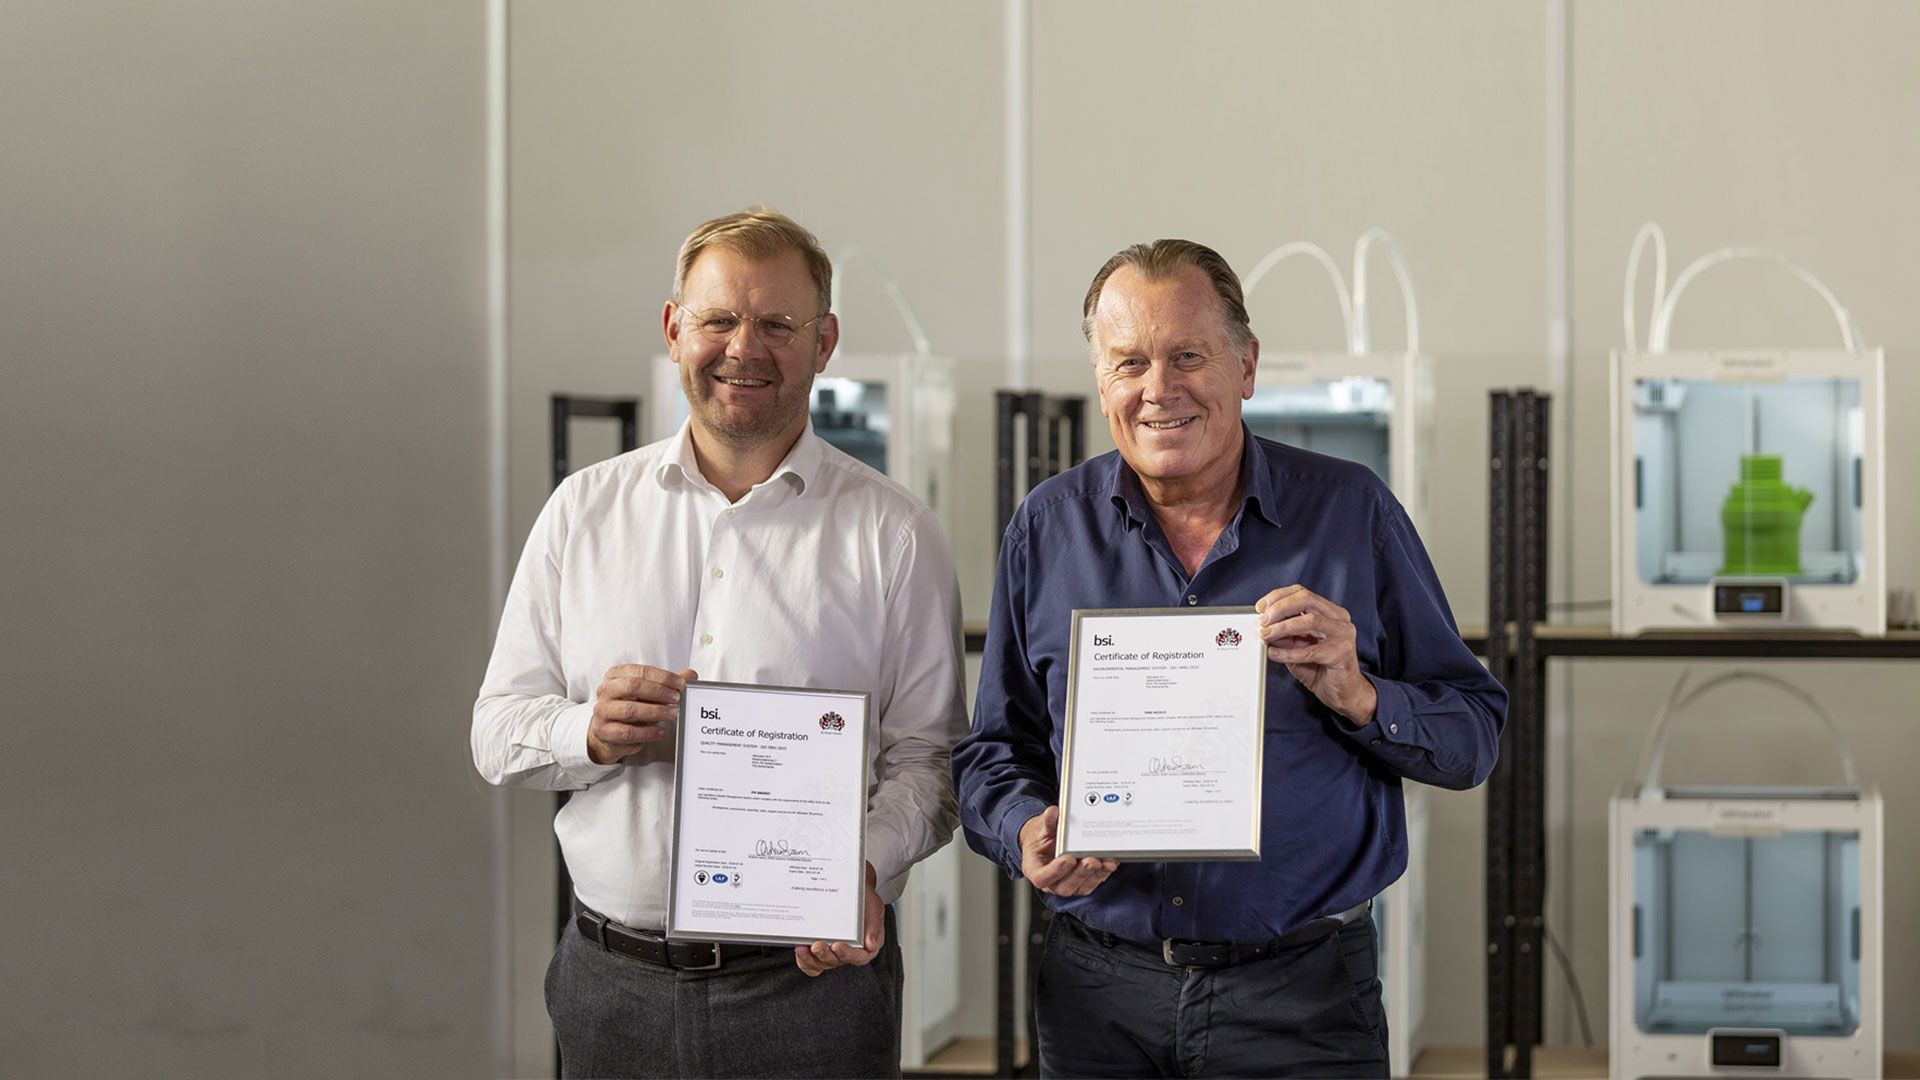 Ultimaker achieves ISO 9001 and ISO 14001 certifications